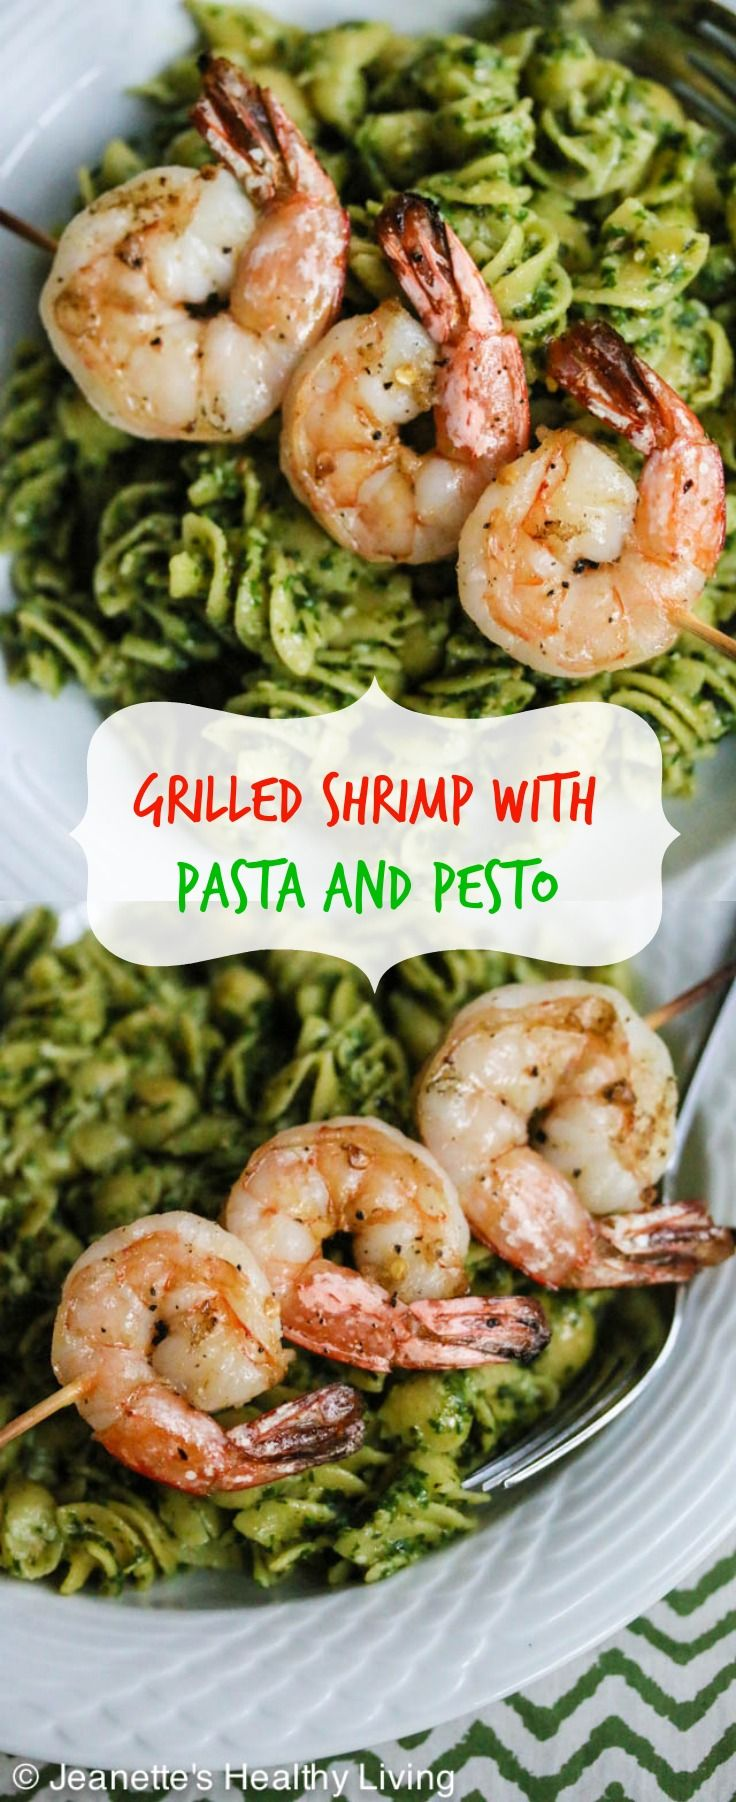 Easy Grilled Garlic Chili Shrimp with Pasta and Pesto © Jeanette's Healthy Living #dinner #recipe #grilling #quick #summer